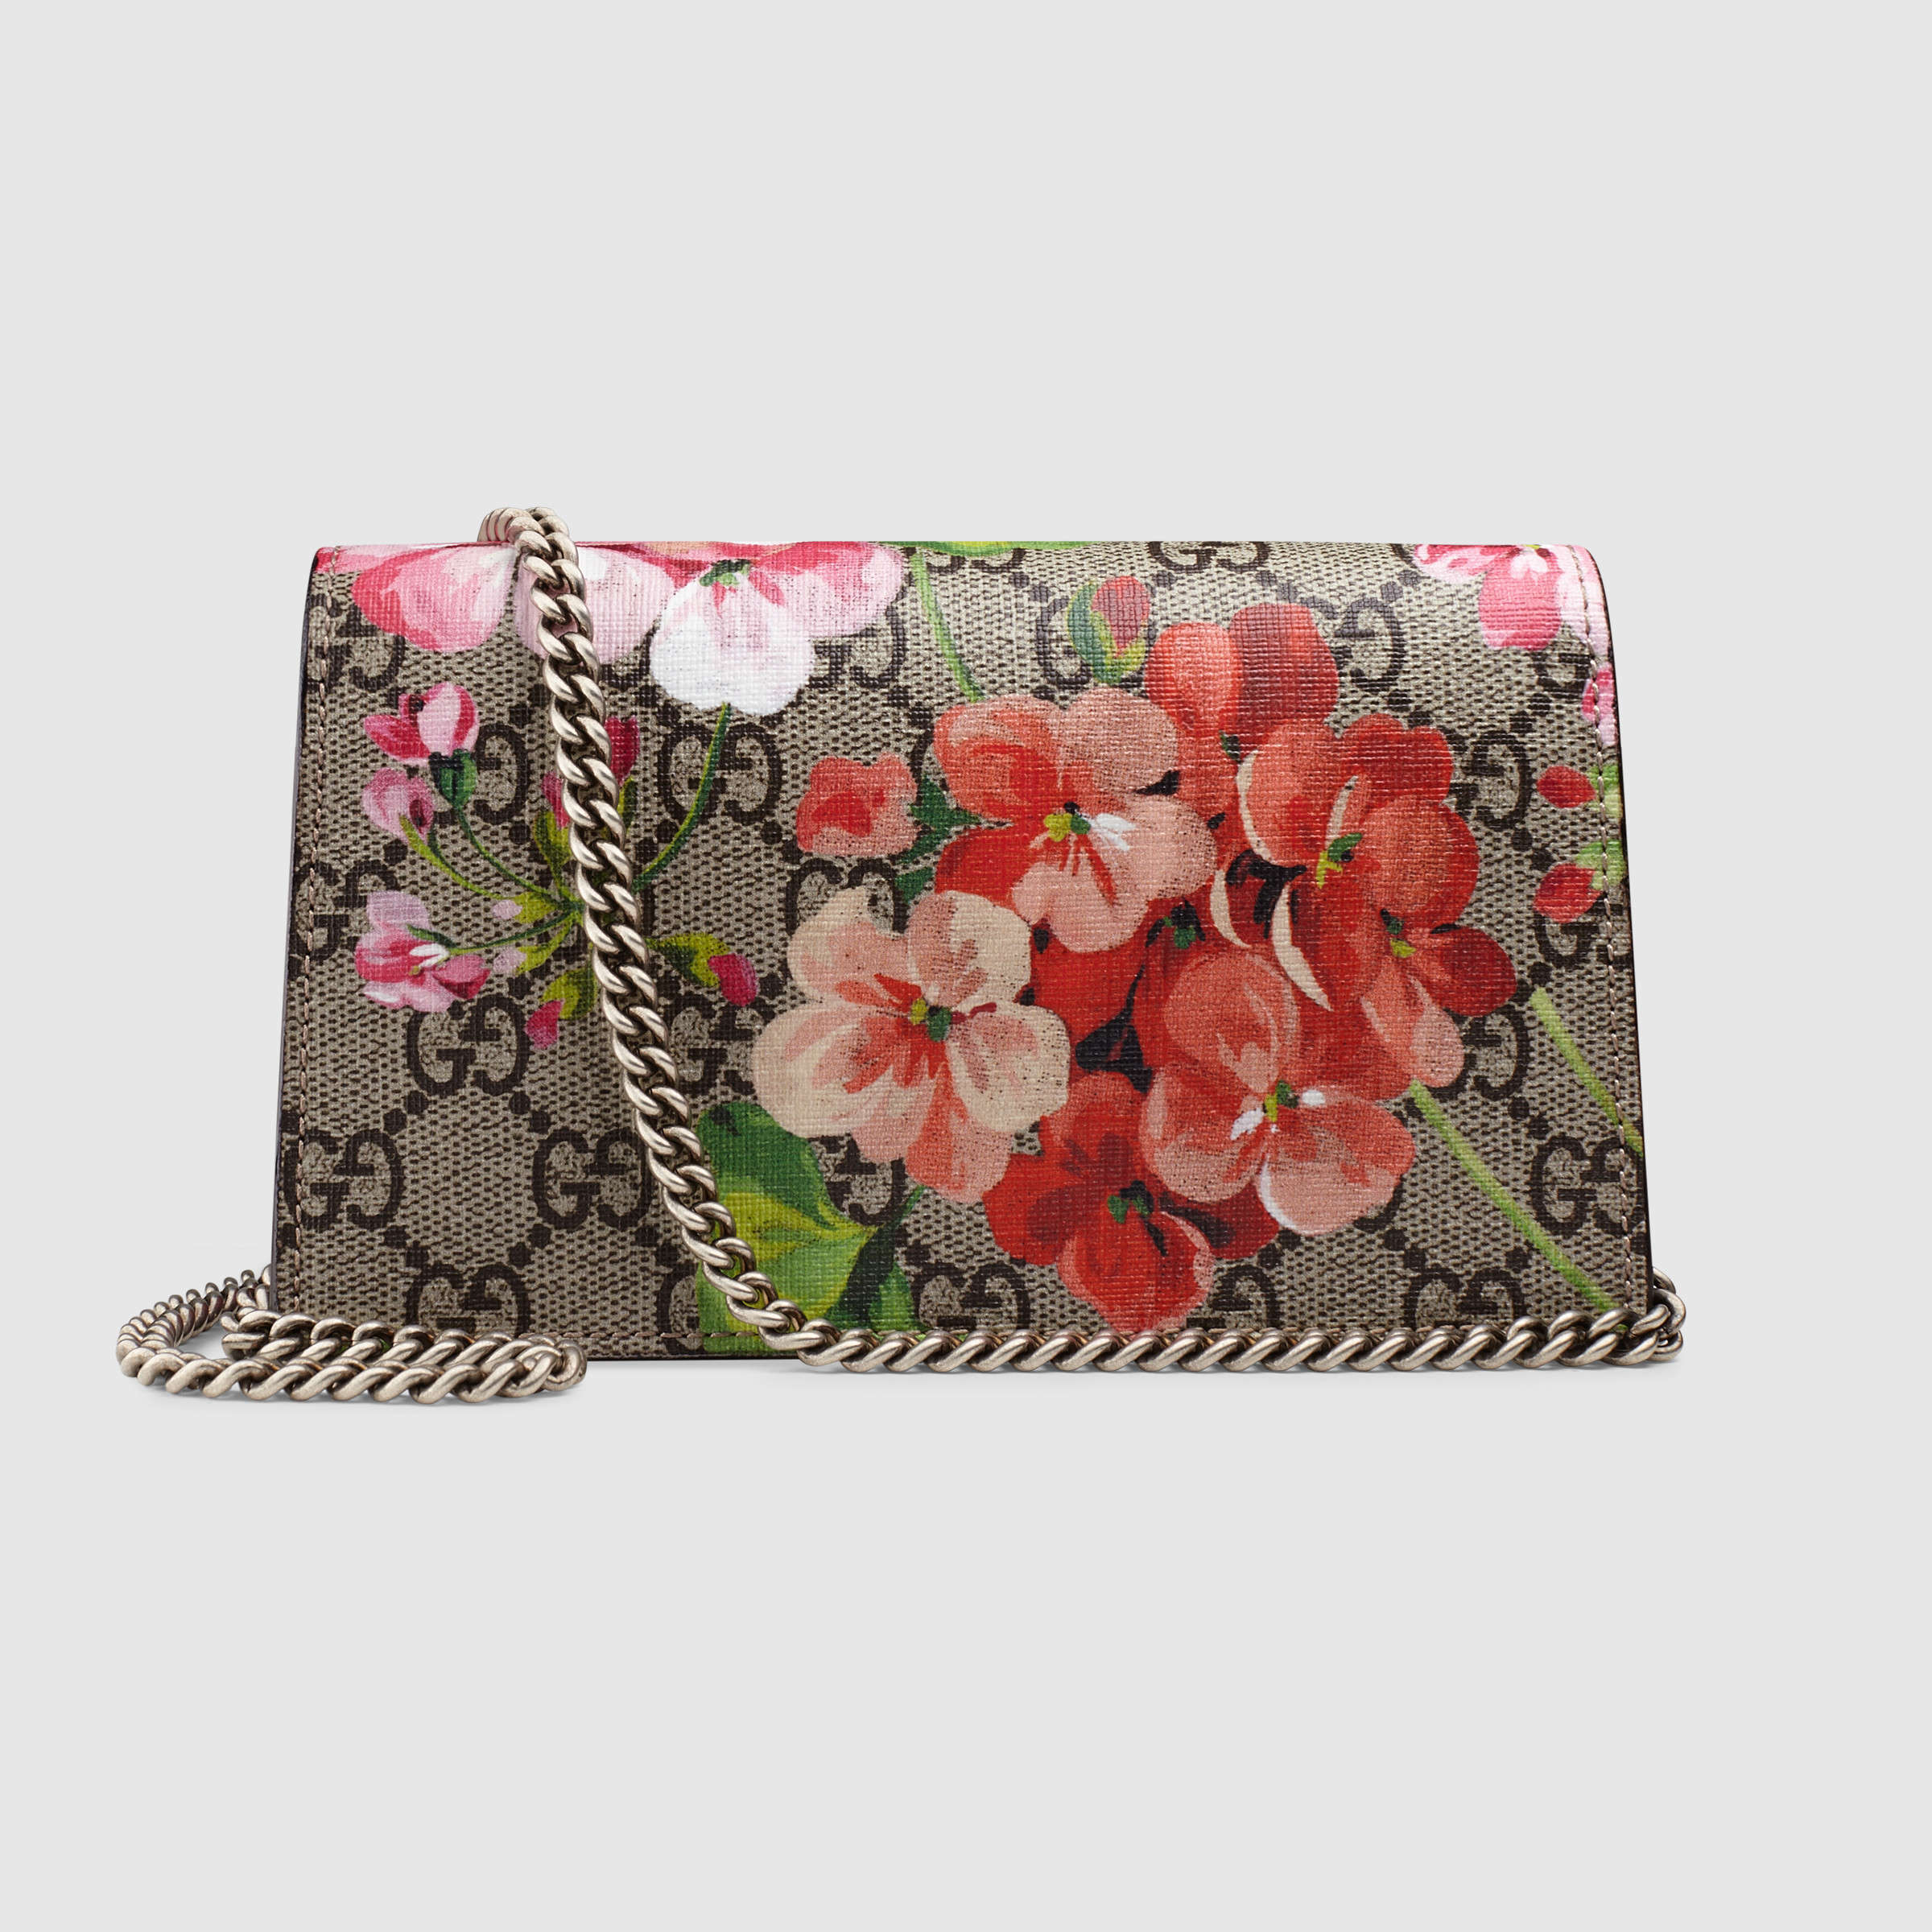 【グッチ】Dionysus Gg Blooms Super Mini Bag ショルダー